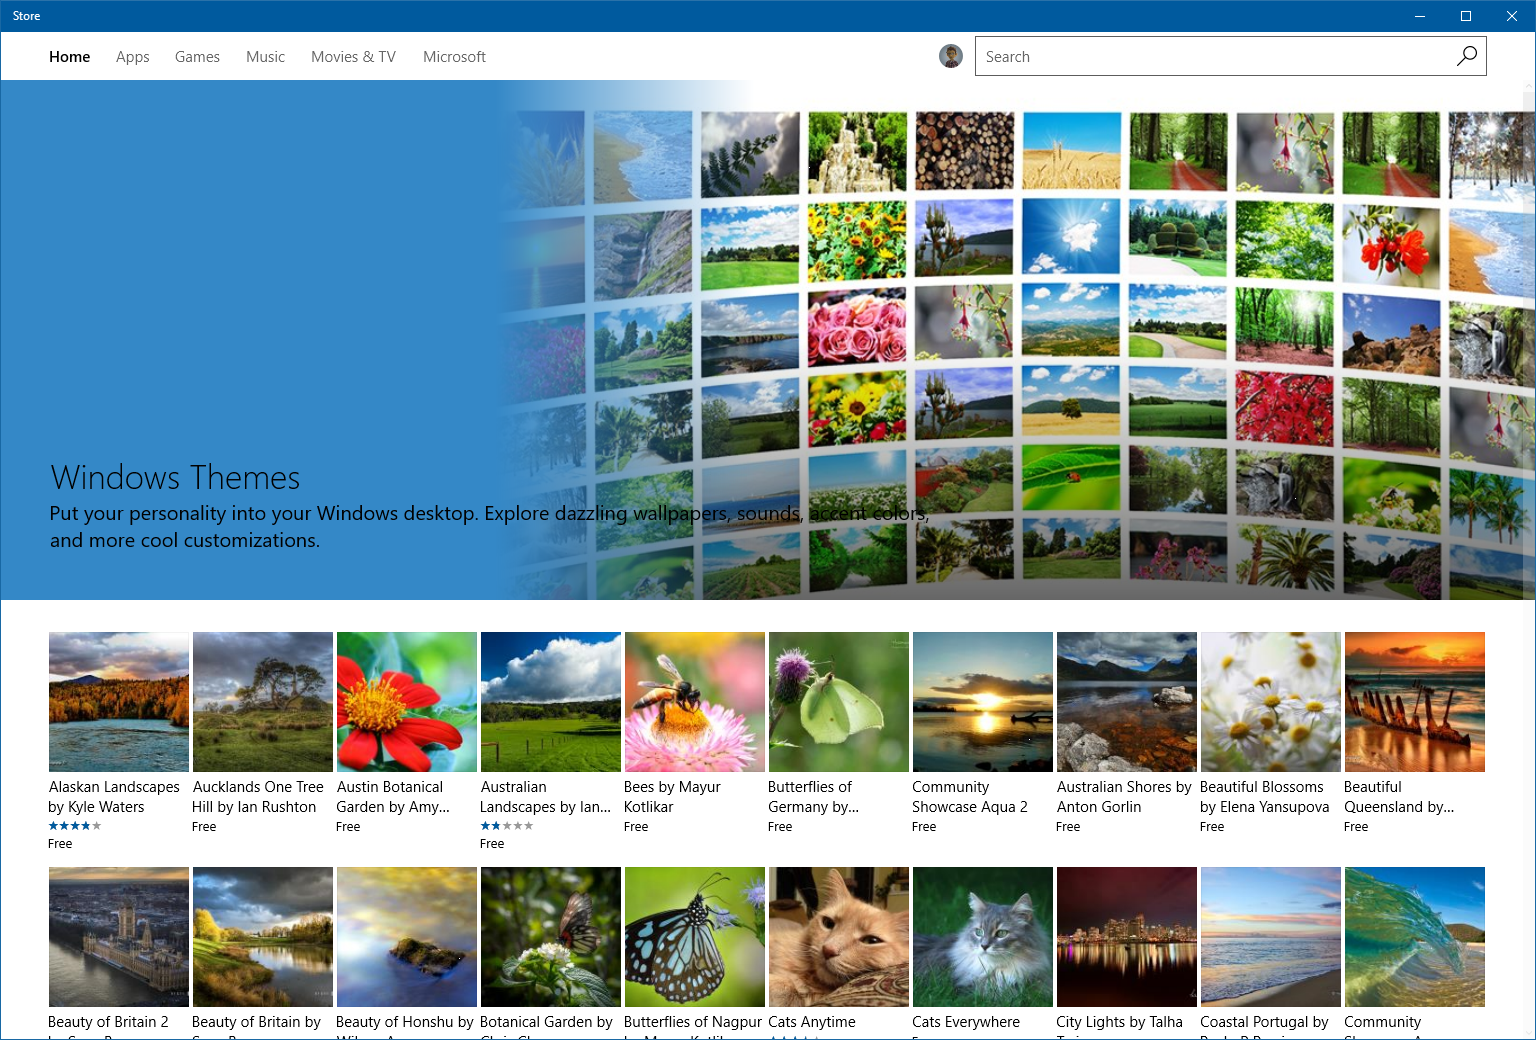 Windows 10 Insider Build 15007 Released to PC and Mobile